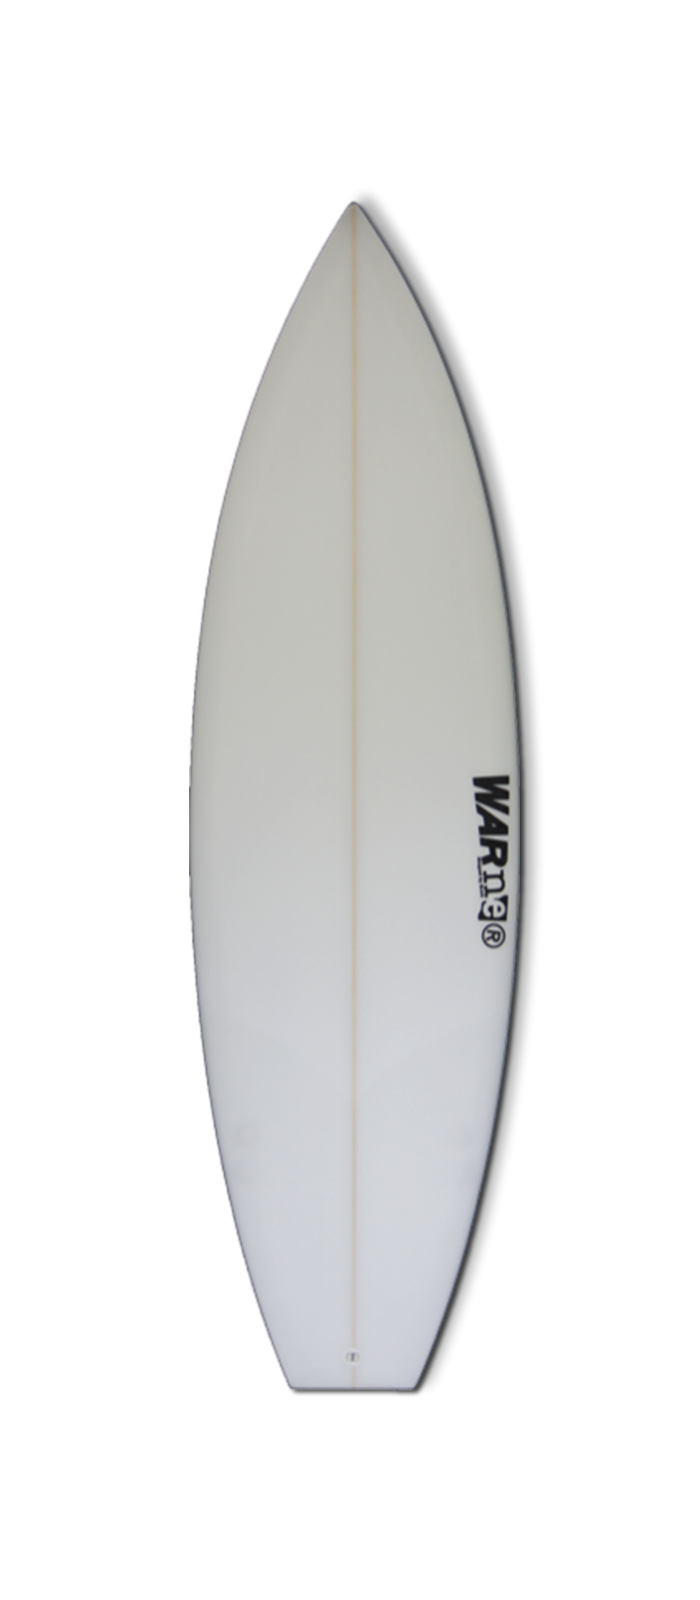 BANDIT surfboard model